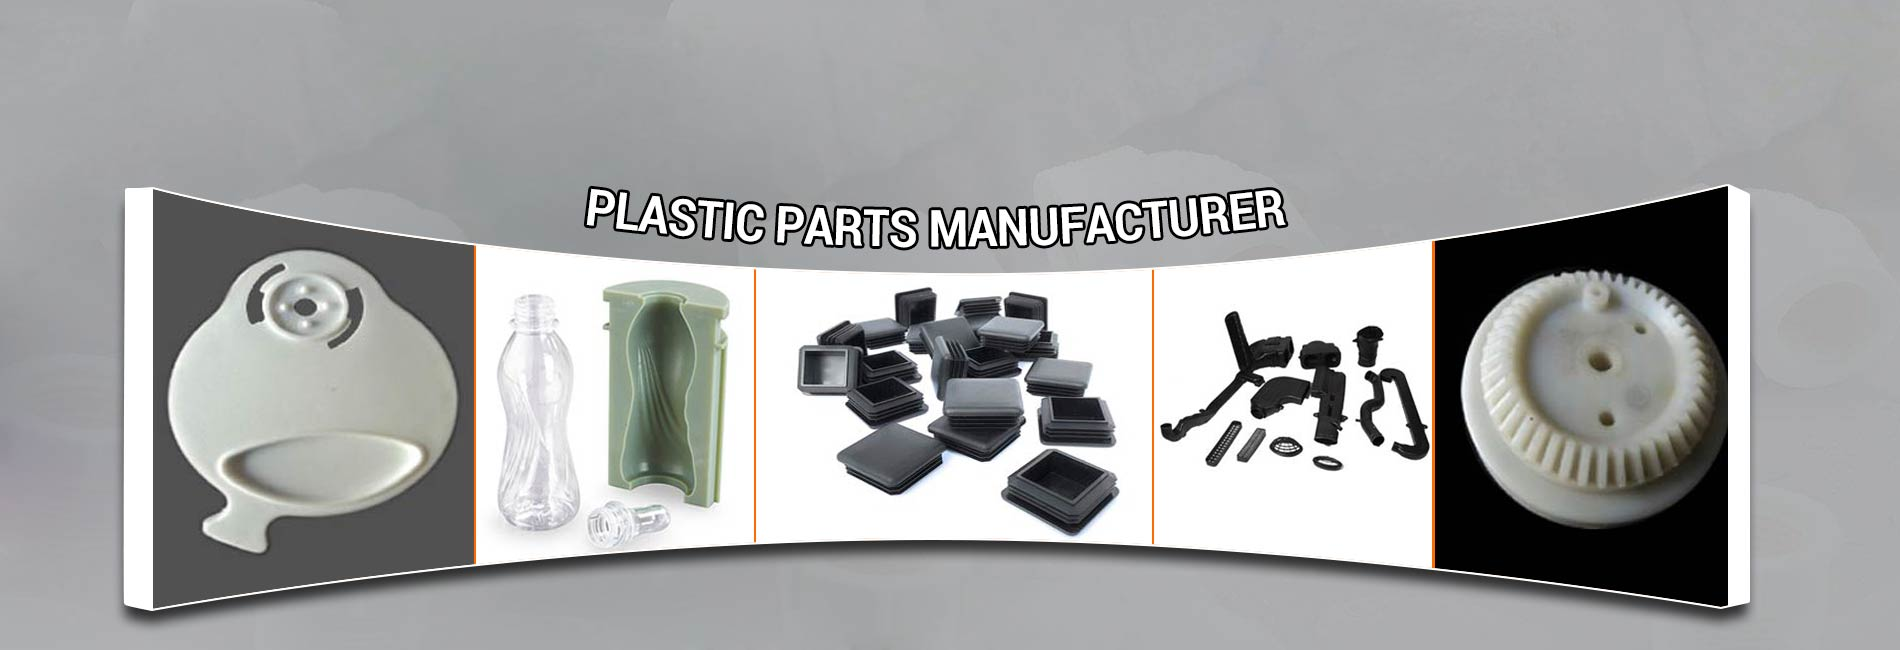 Industrial Plastic Components Manufacturer